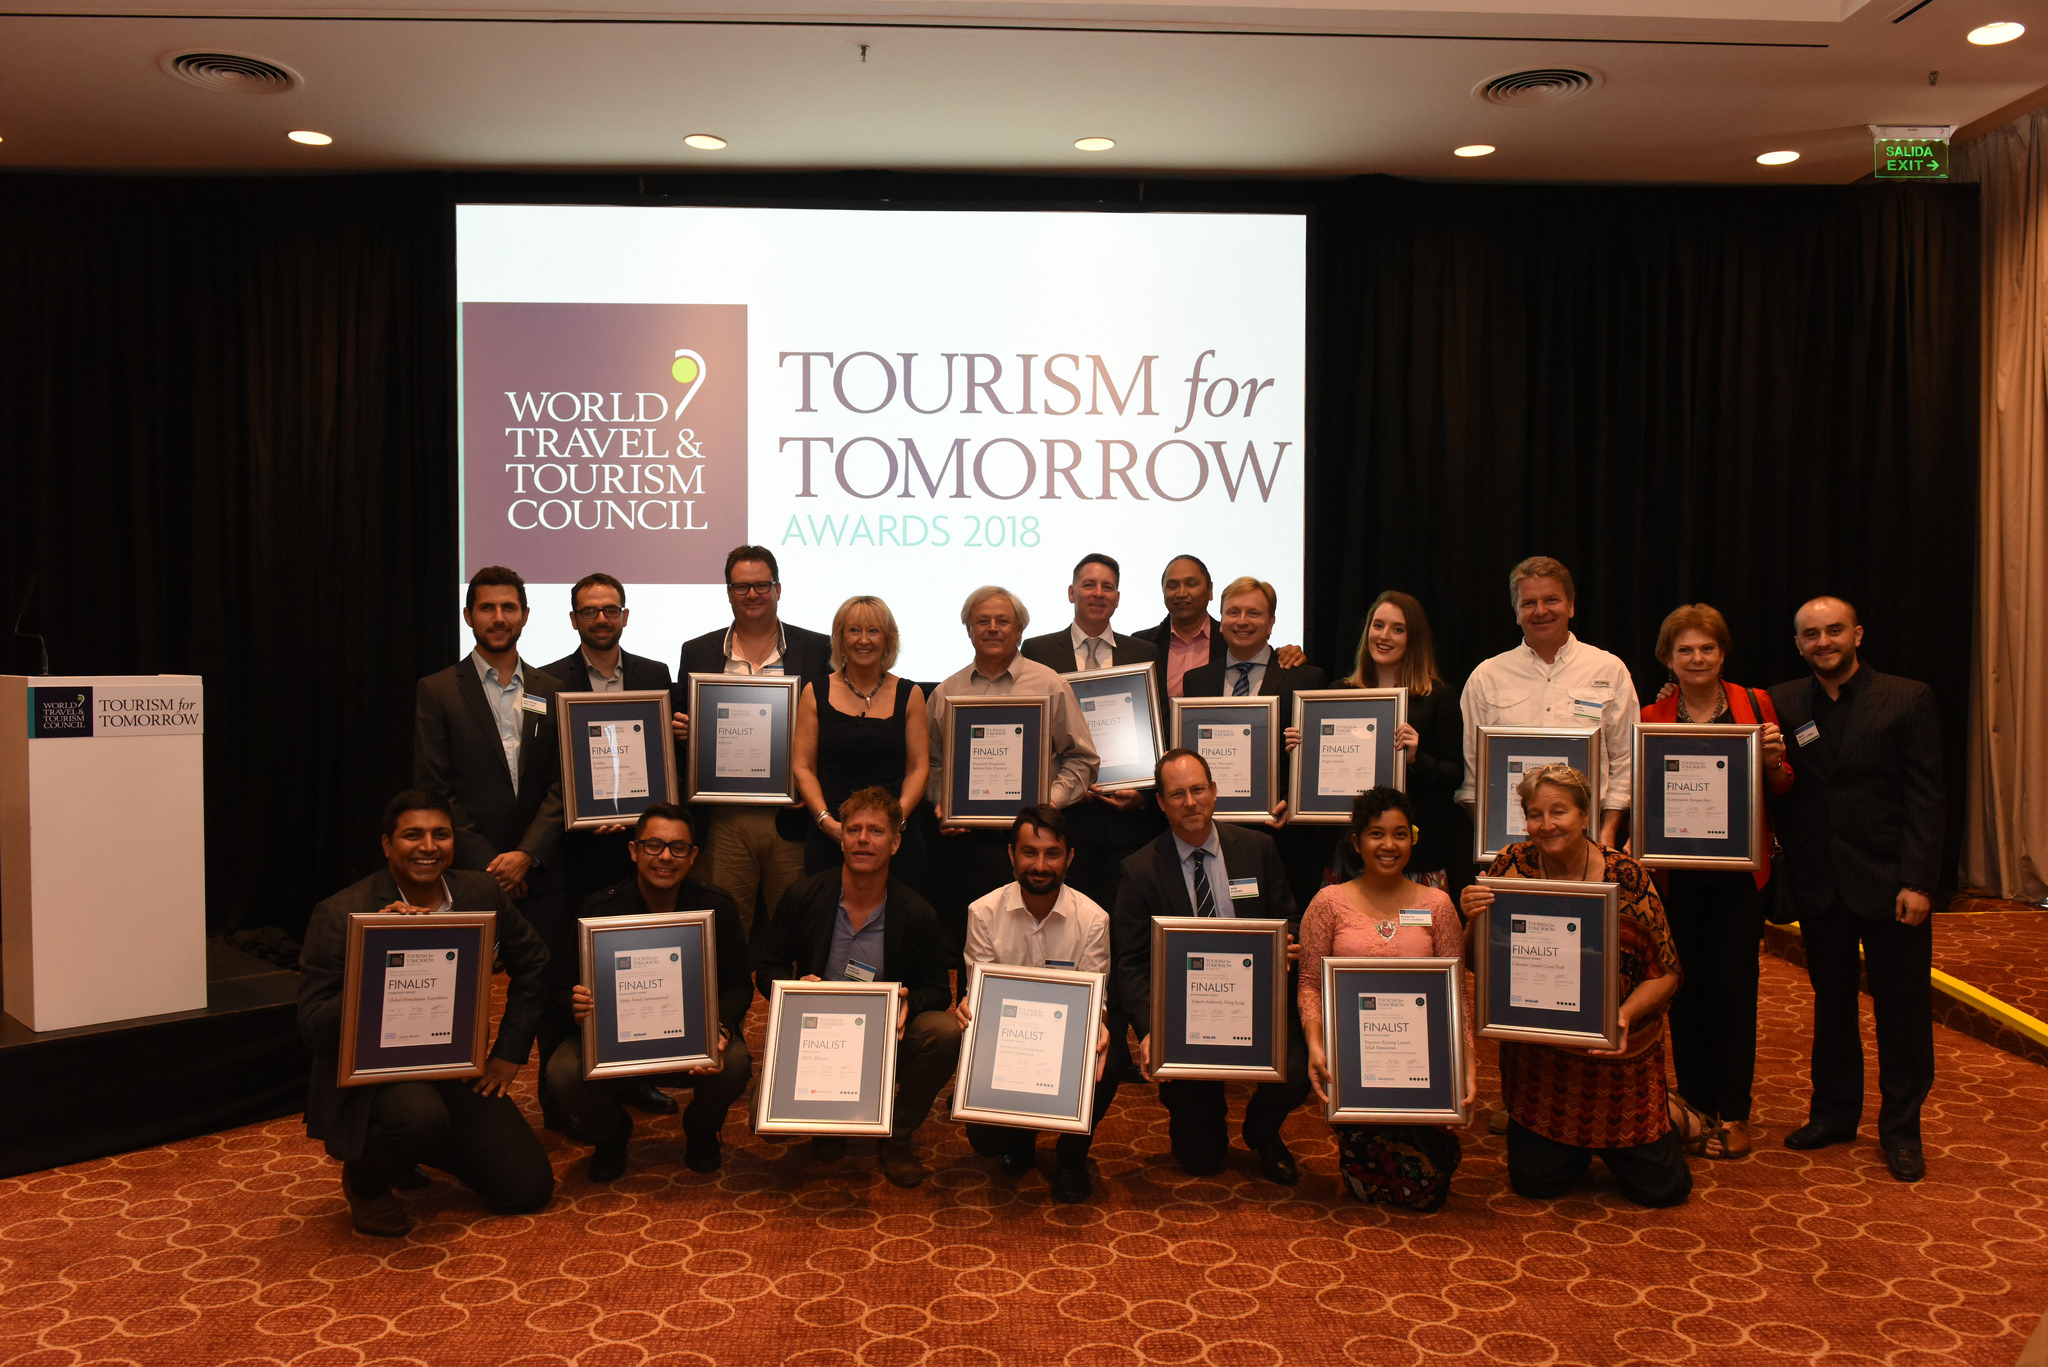 Celebrating 15 years of Tourism for Tomorrow:WTTC Tourism for Tomorrow Awards 2019 applications are now open